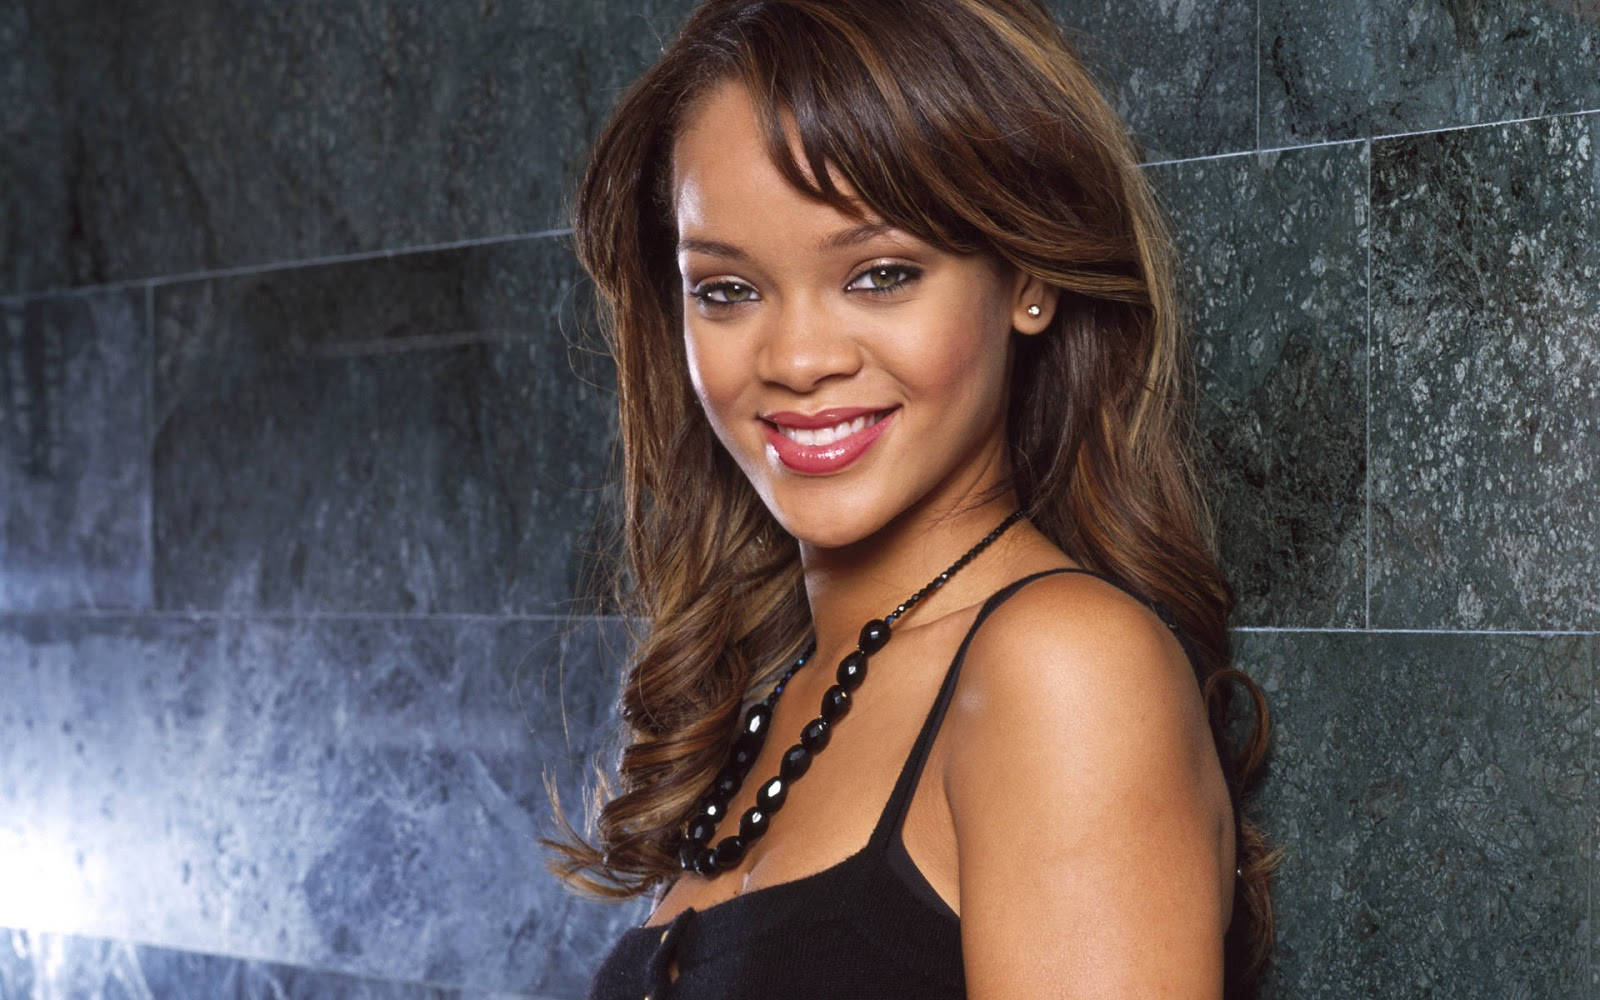 Rihanna Beautiful Singer Hot Sexy Hd Wallpapers Latest 2008 Ktm Wiring Diagram 450